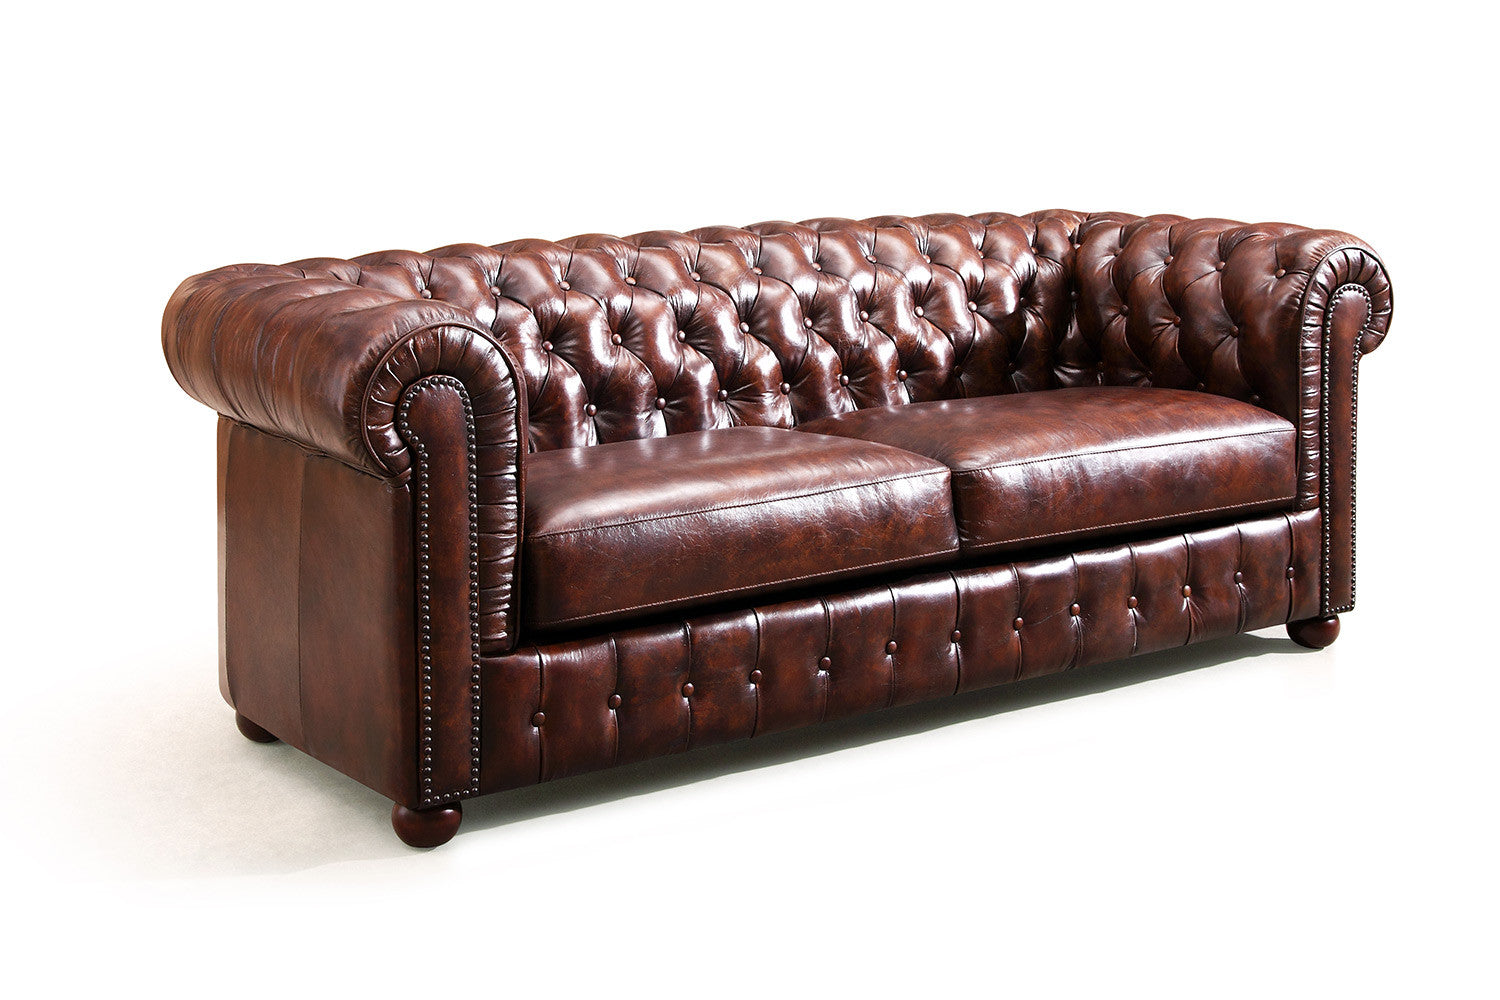 Canap chesterfield original rose moore - Canape chesterfield ancien ...